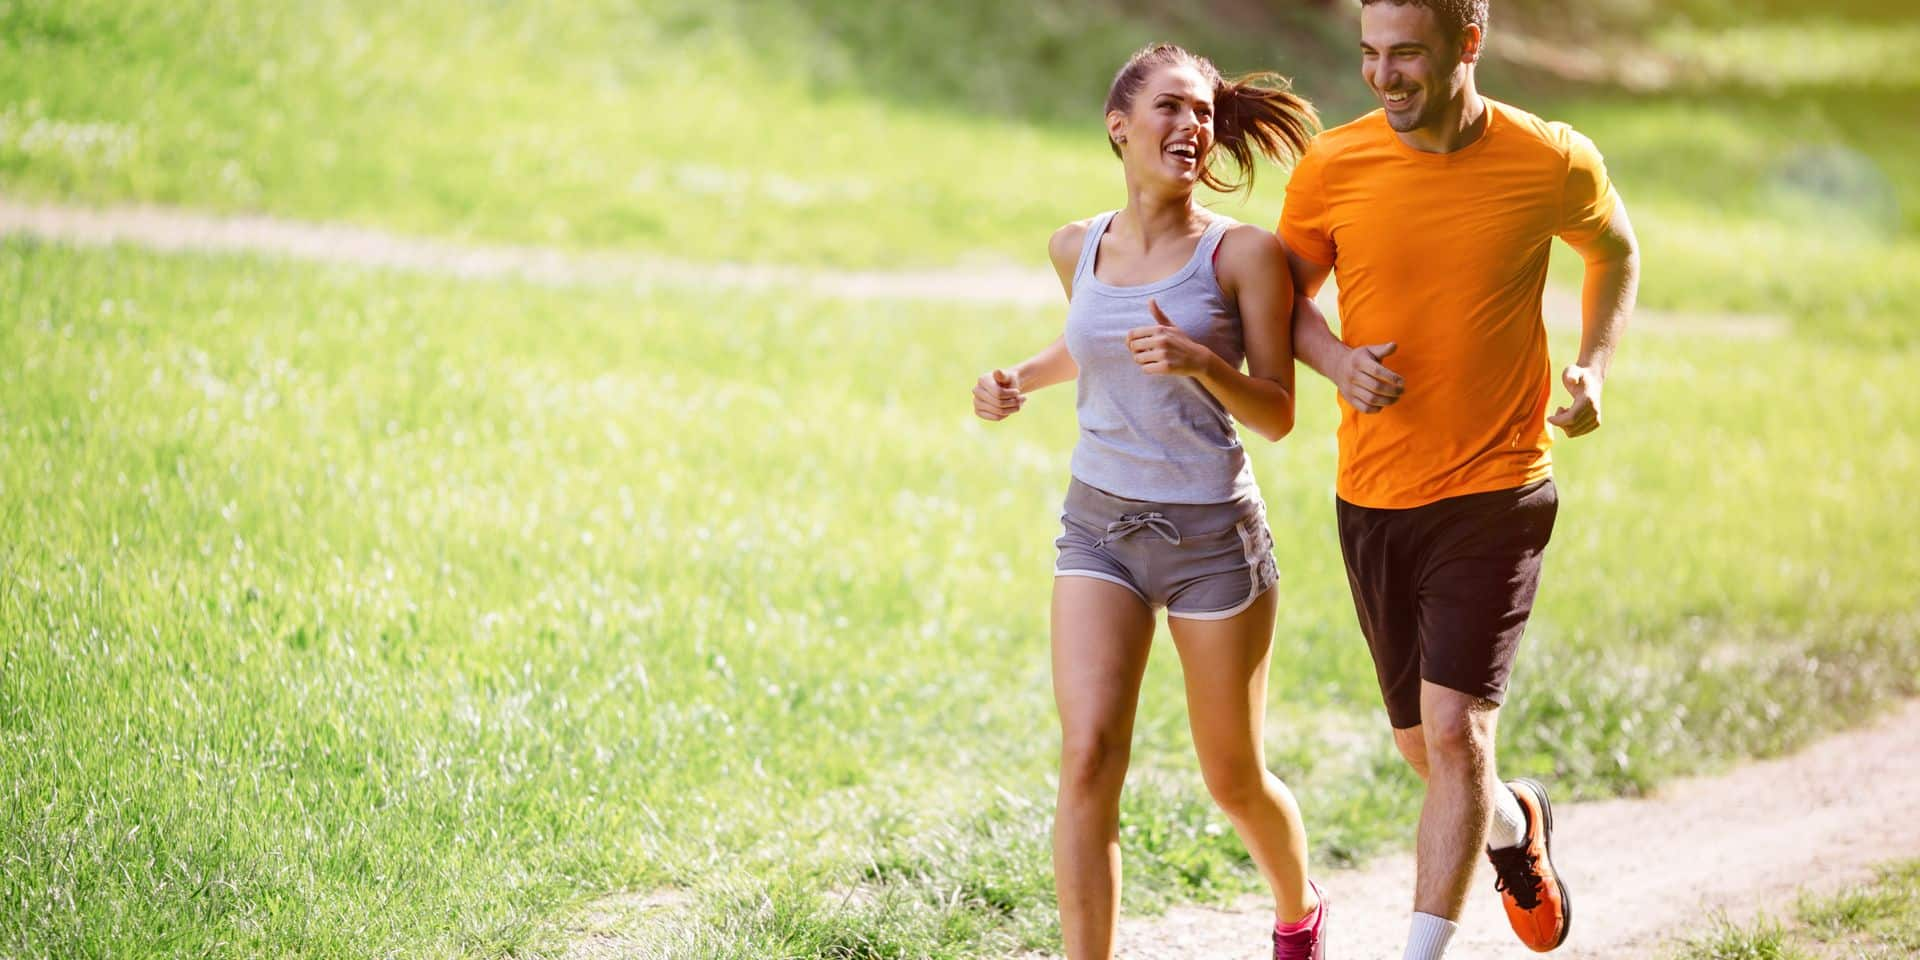 Couple,Jogging,And,Running,Outdoors,In,Nature